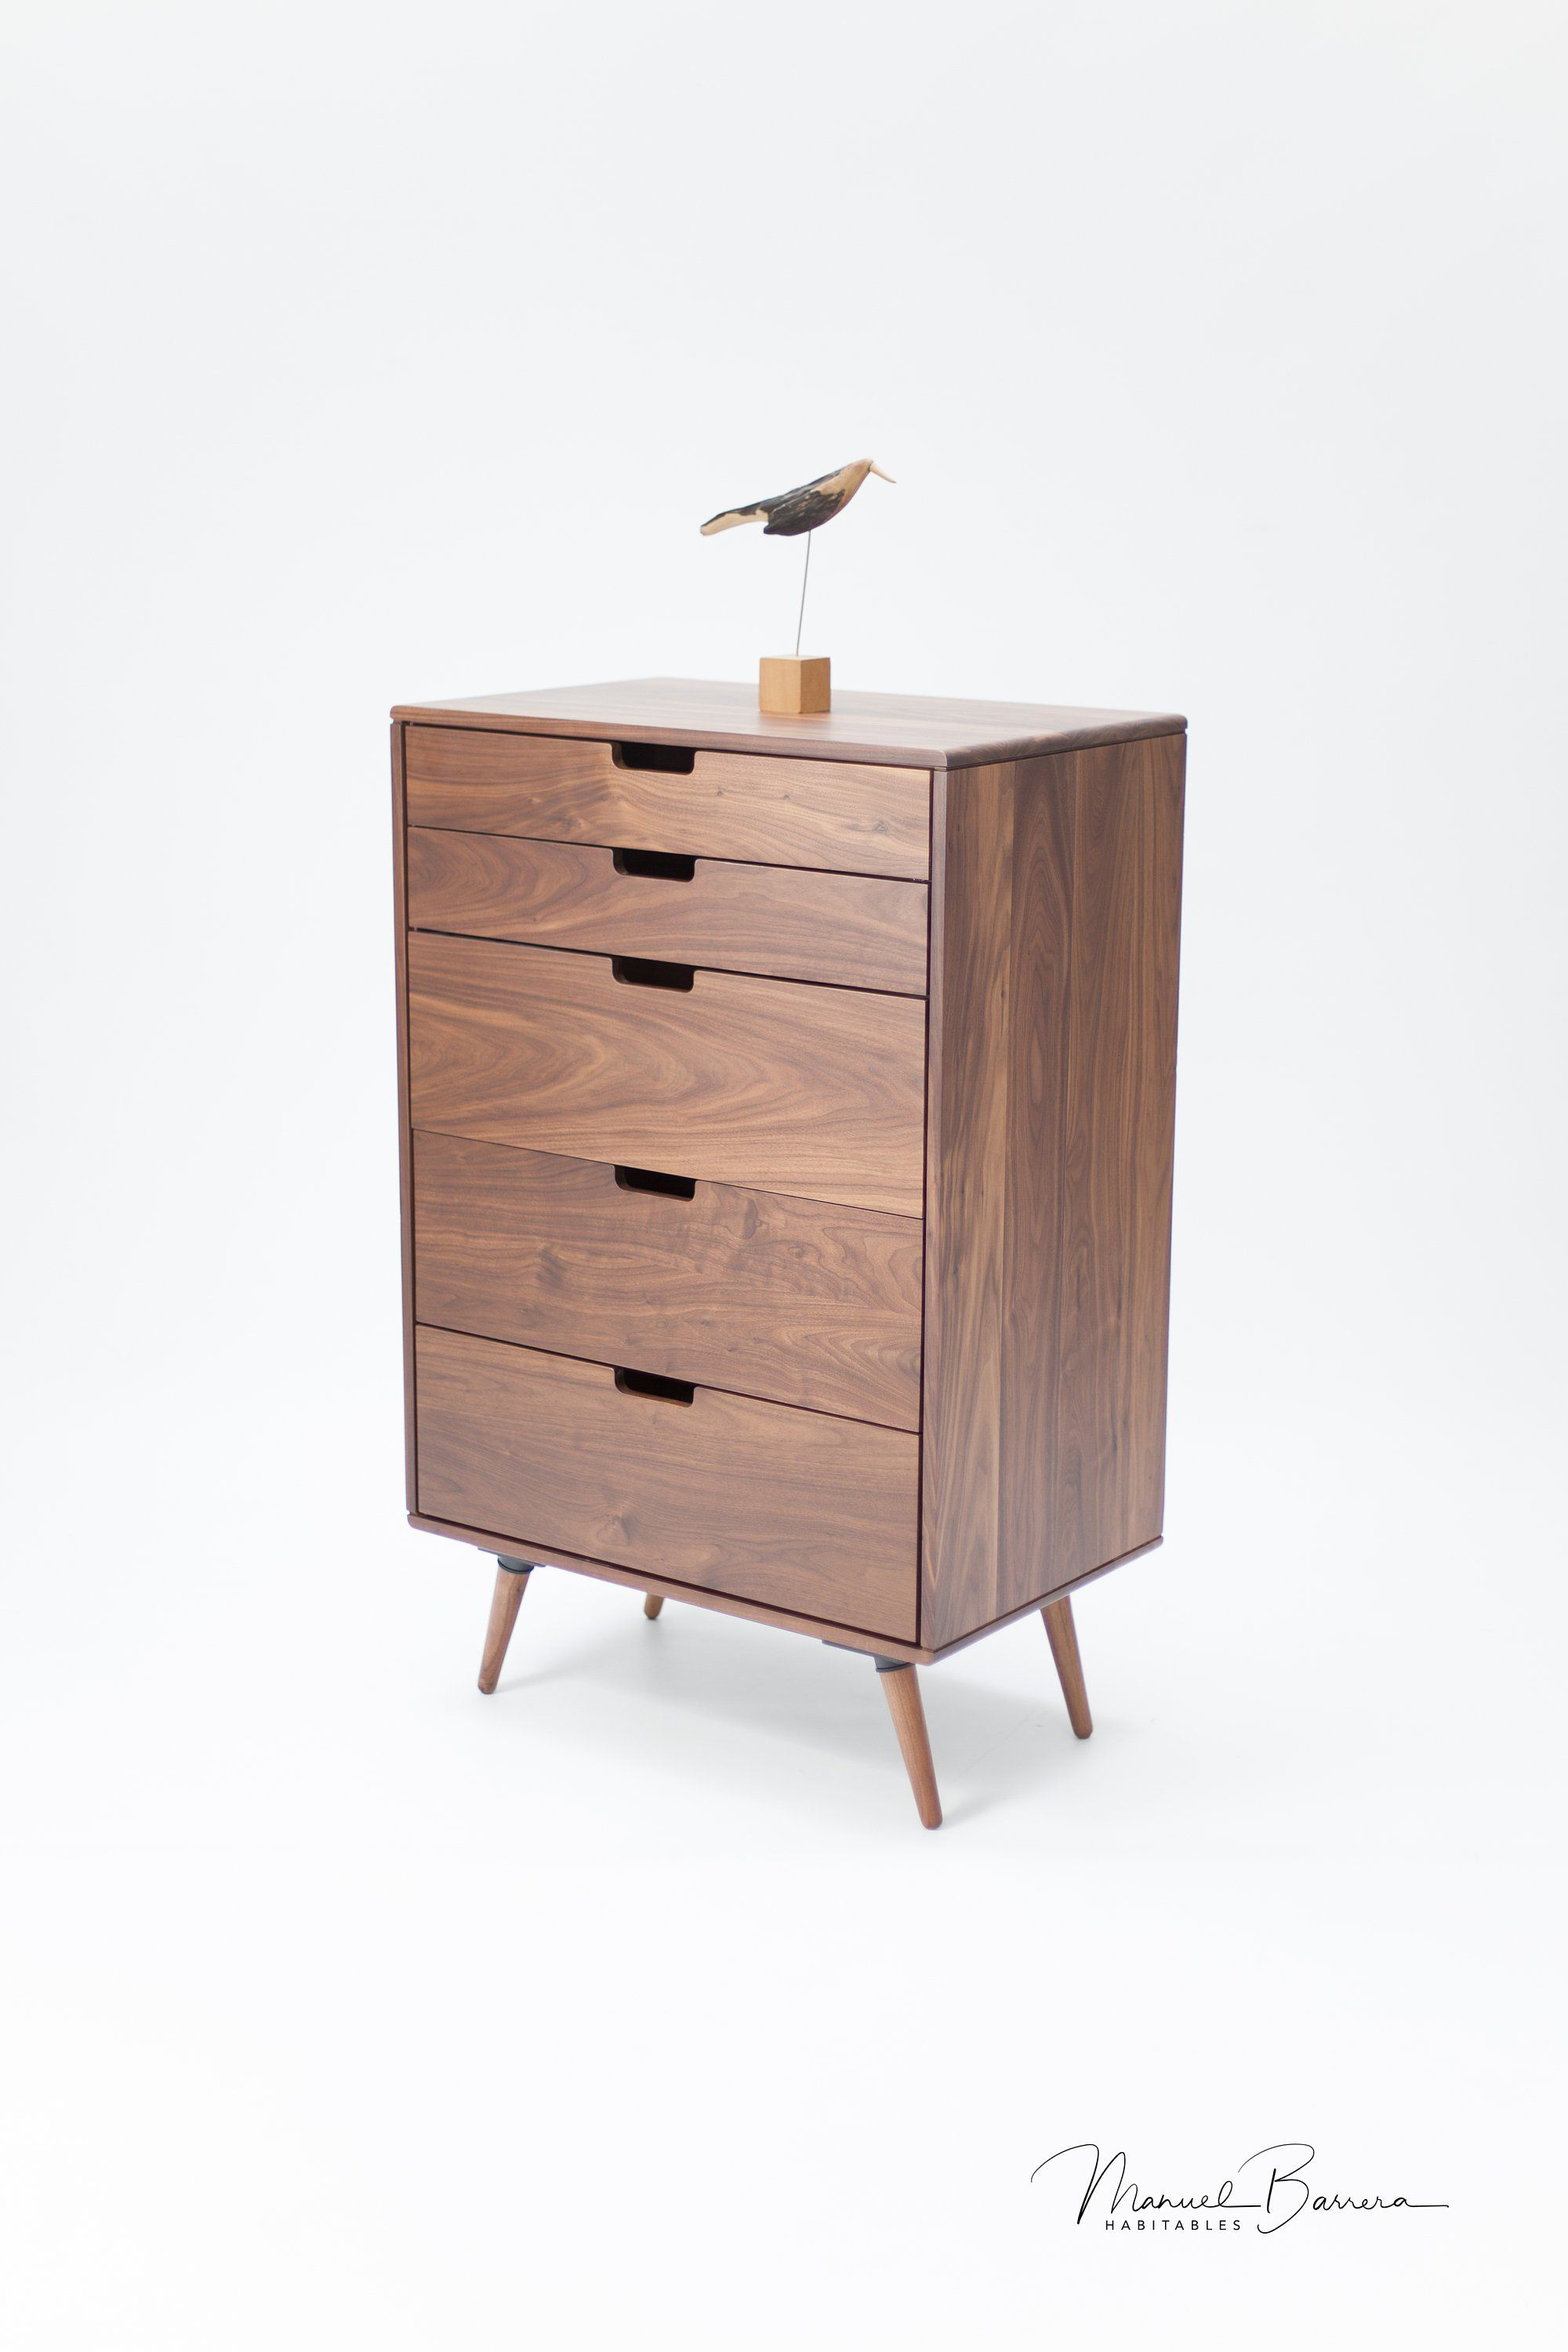 Chest Of Drawers Tall Boy In Walnut By Manuel Barrera For Habitables Scandinavian Furniture Solid Wood Tall Bedside Table